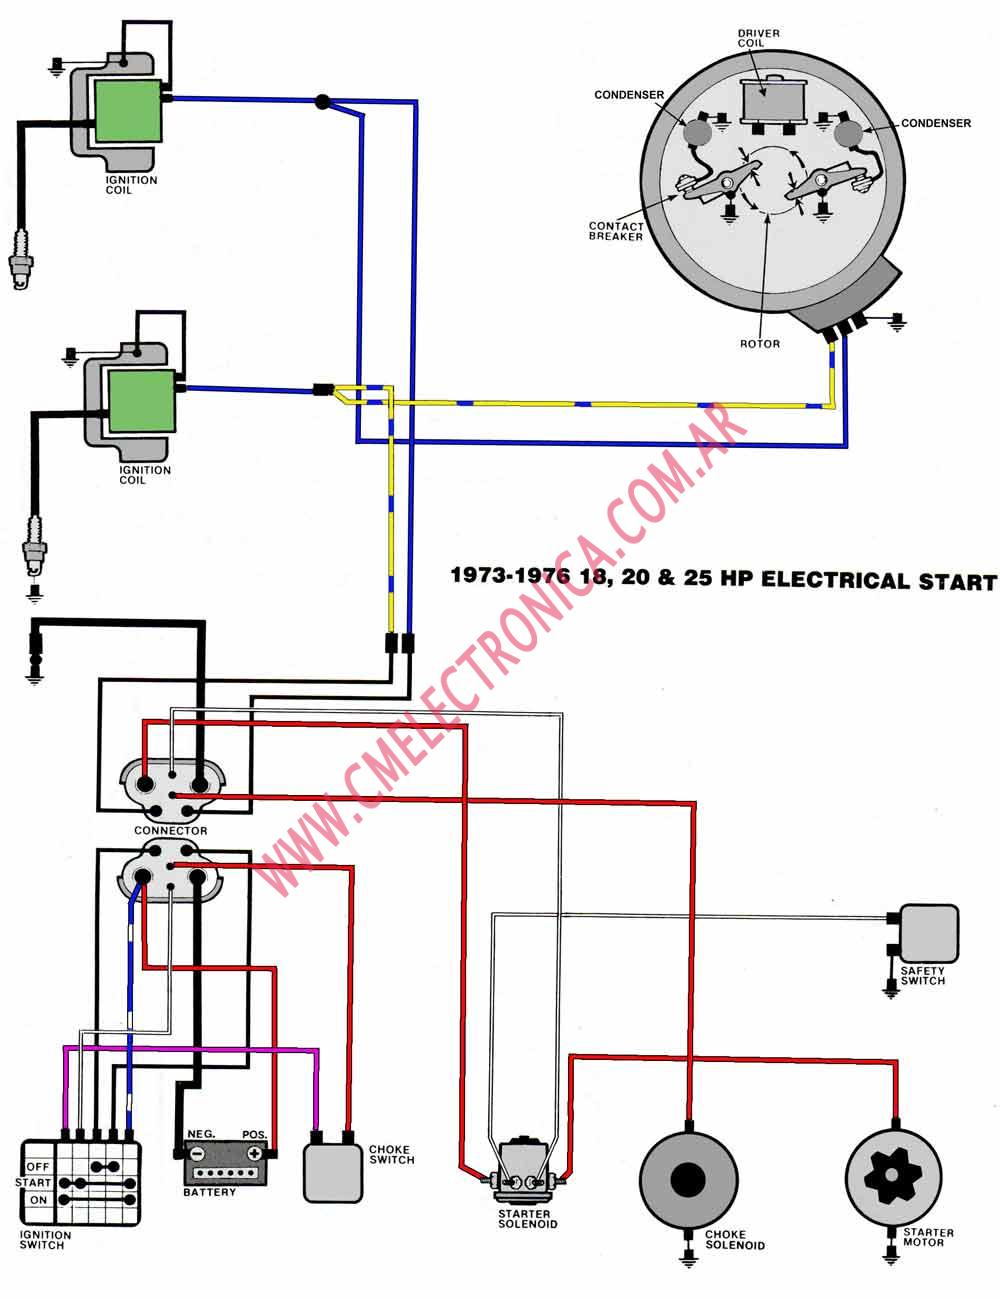 johnson outboard wiring diagram johnson wiring diagrams